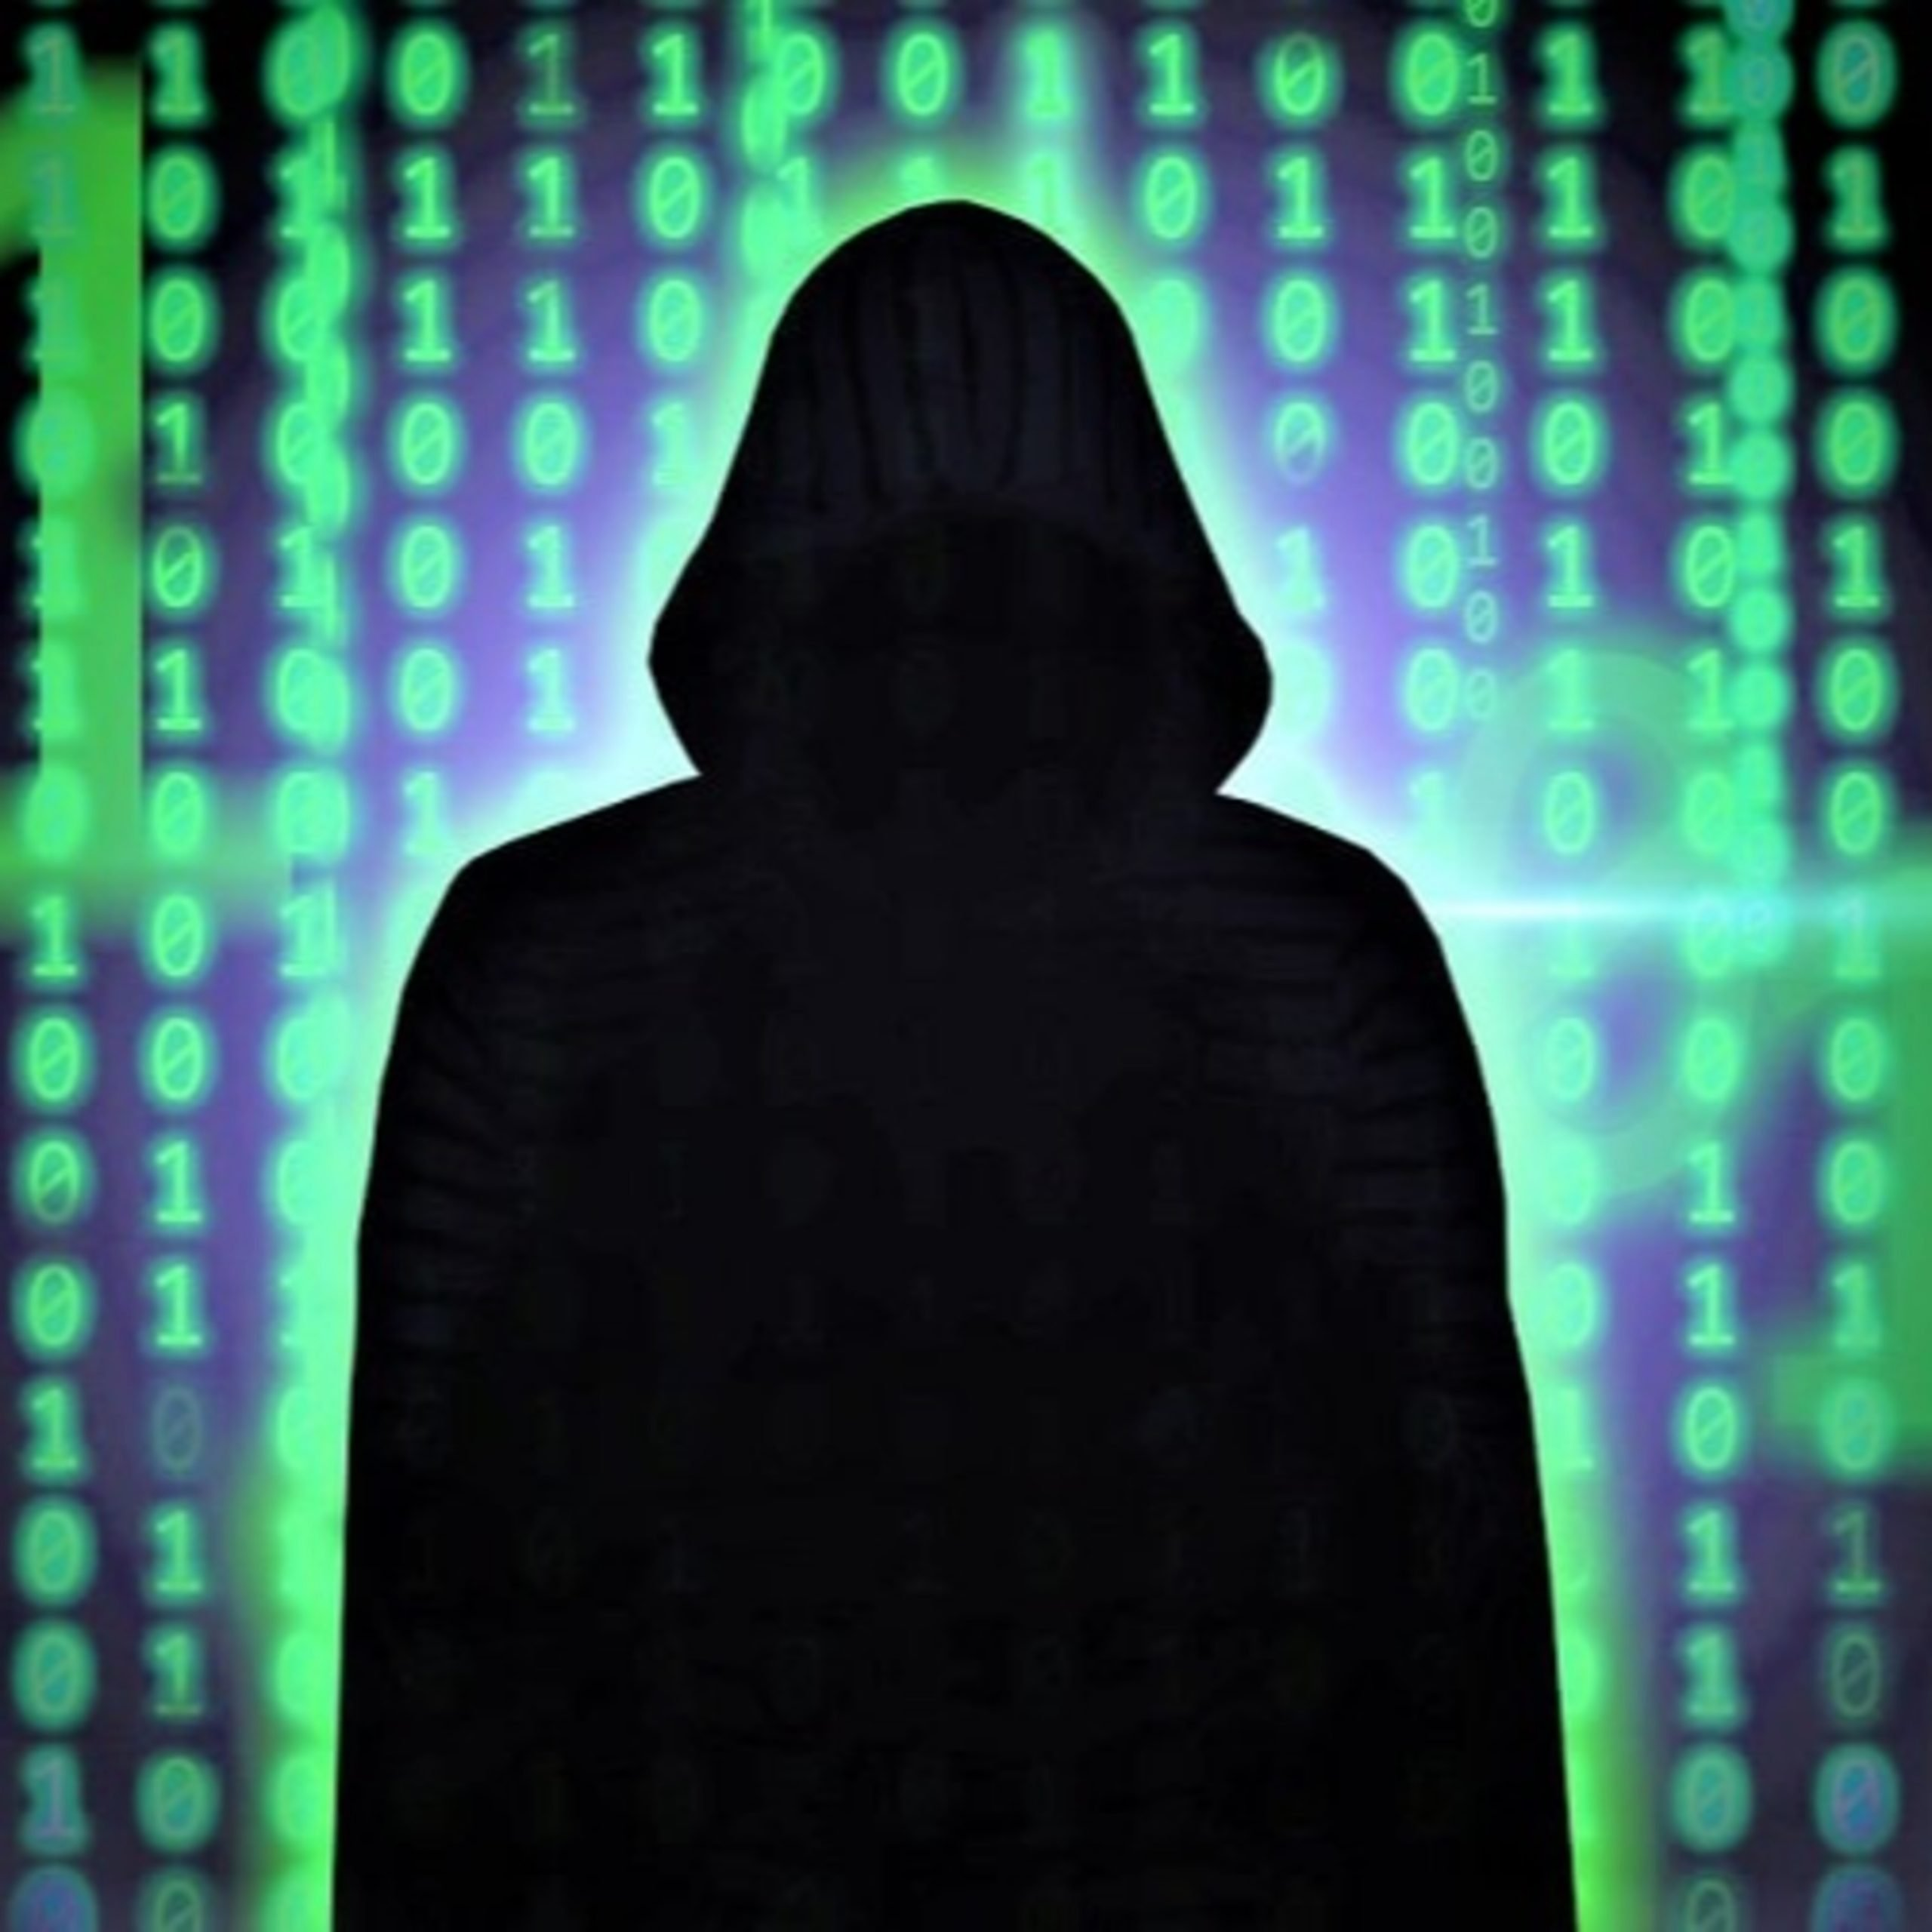 Top 10 Most Dangerous Hackers In The World